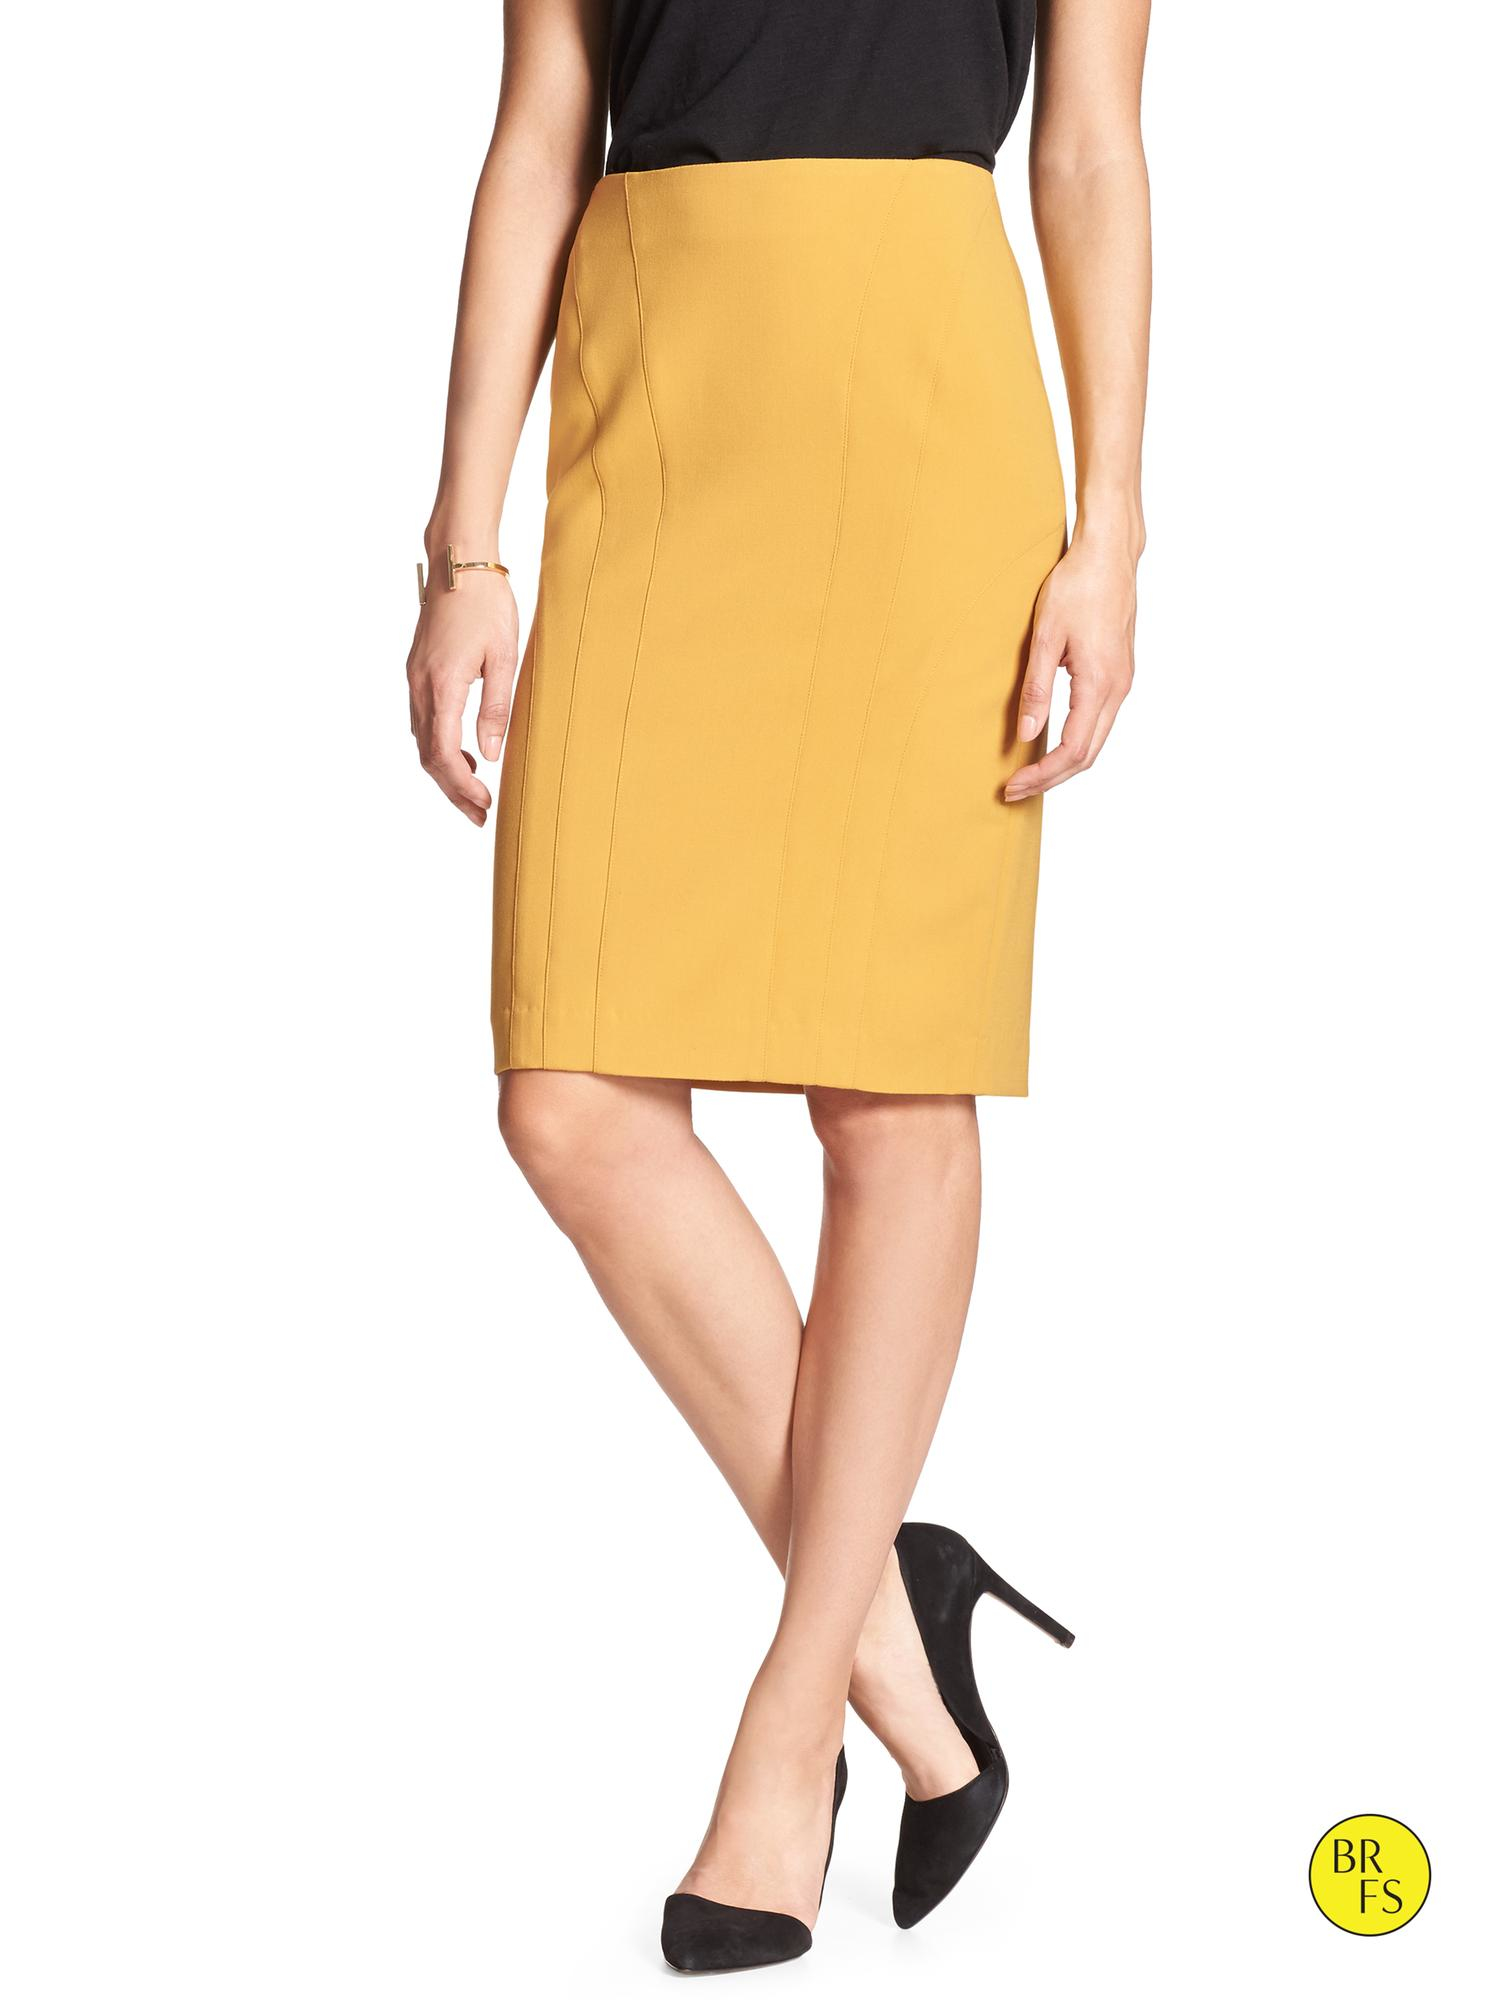 bc01210f13 Banana Republic Factory Seamed Pencil Skirt in Yellow - Lyst